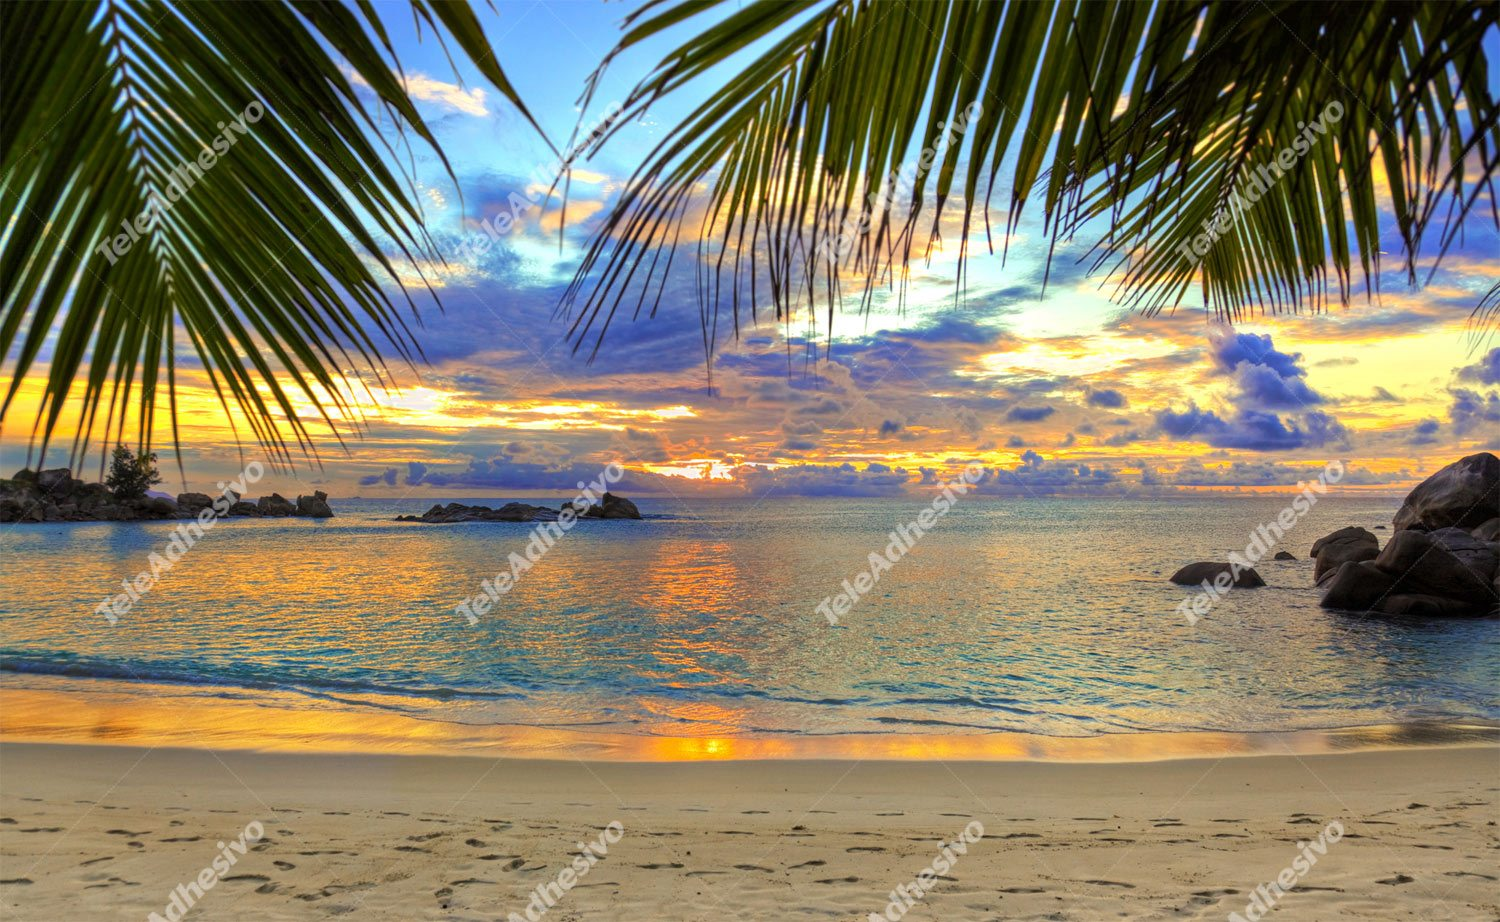 Wall Murals: Sunset beach